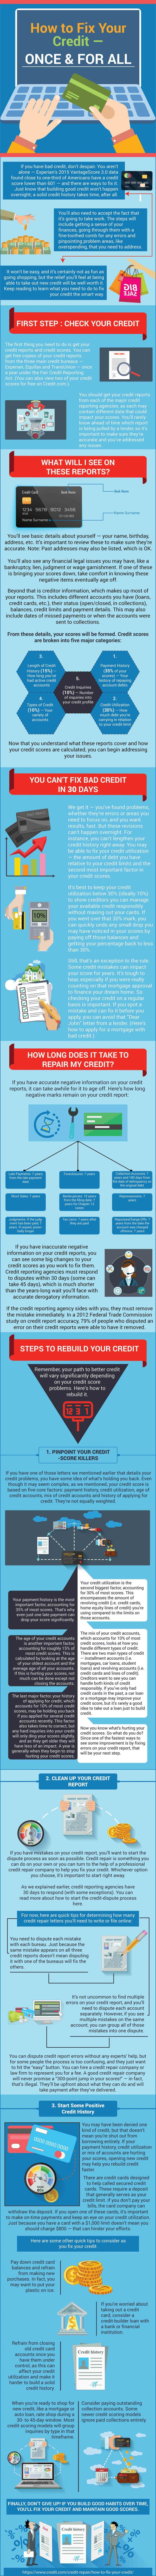 how-to-repair-your-credit-score-in-chicago